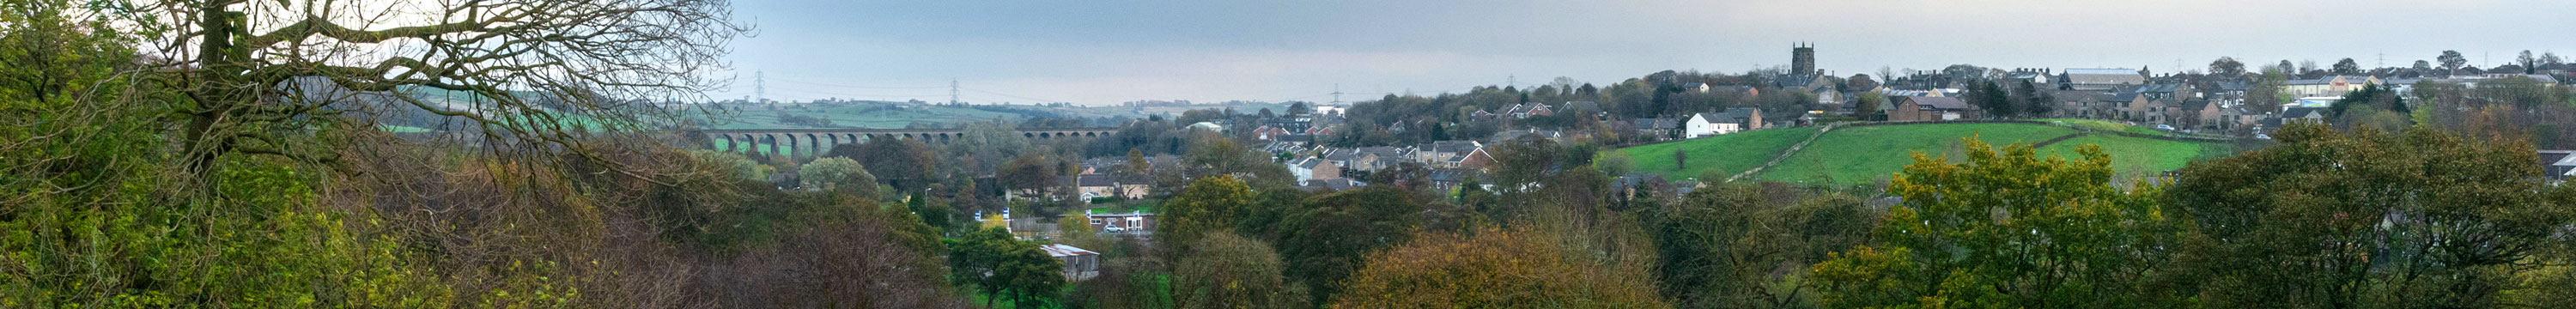 View of Penistone from Huddersfield Road area